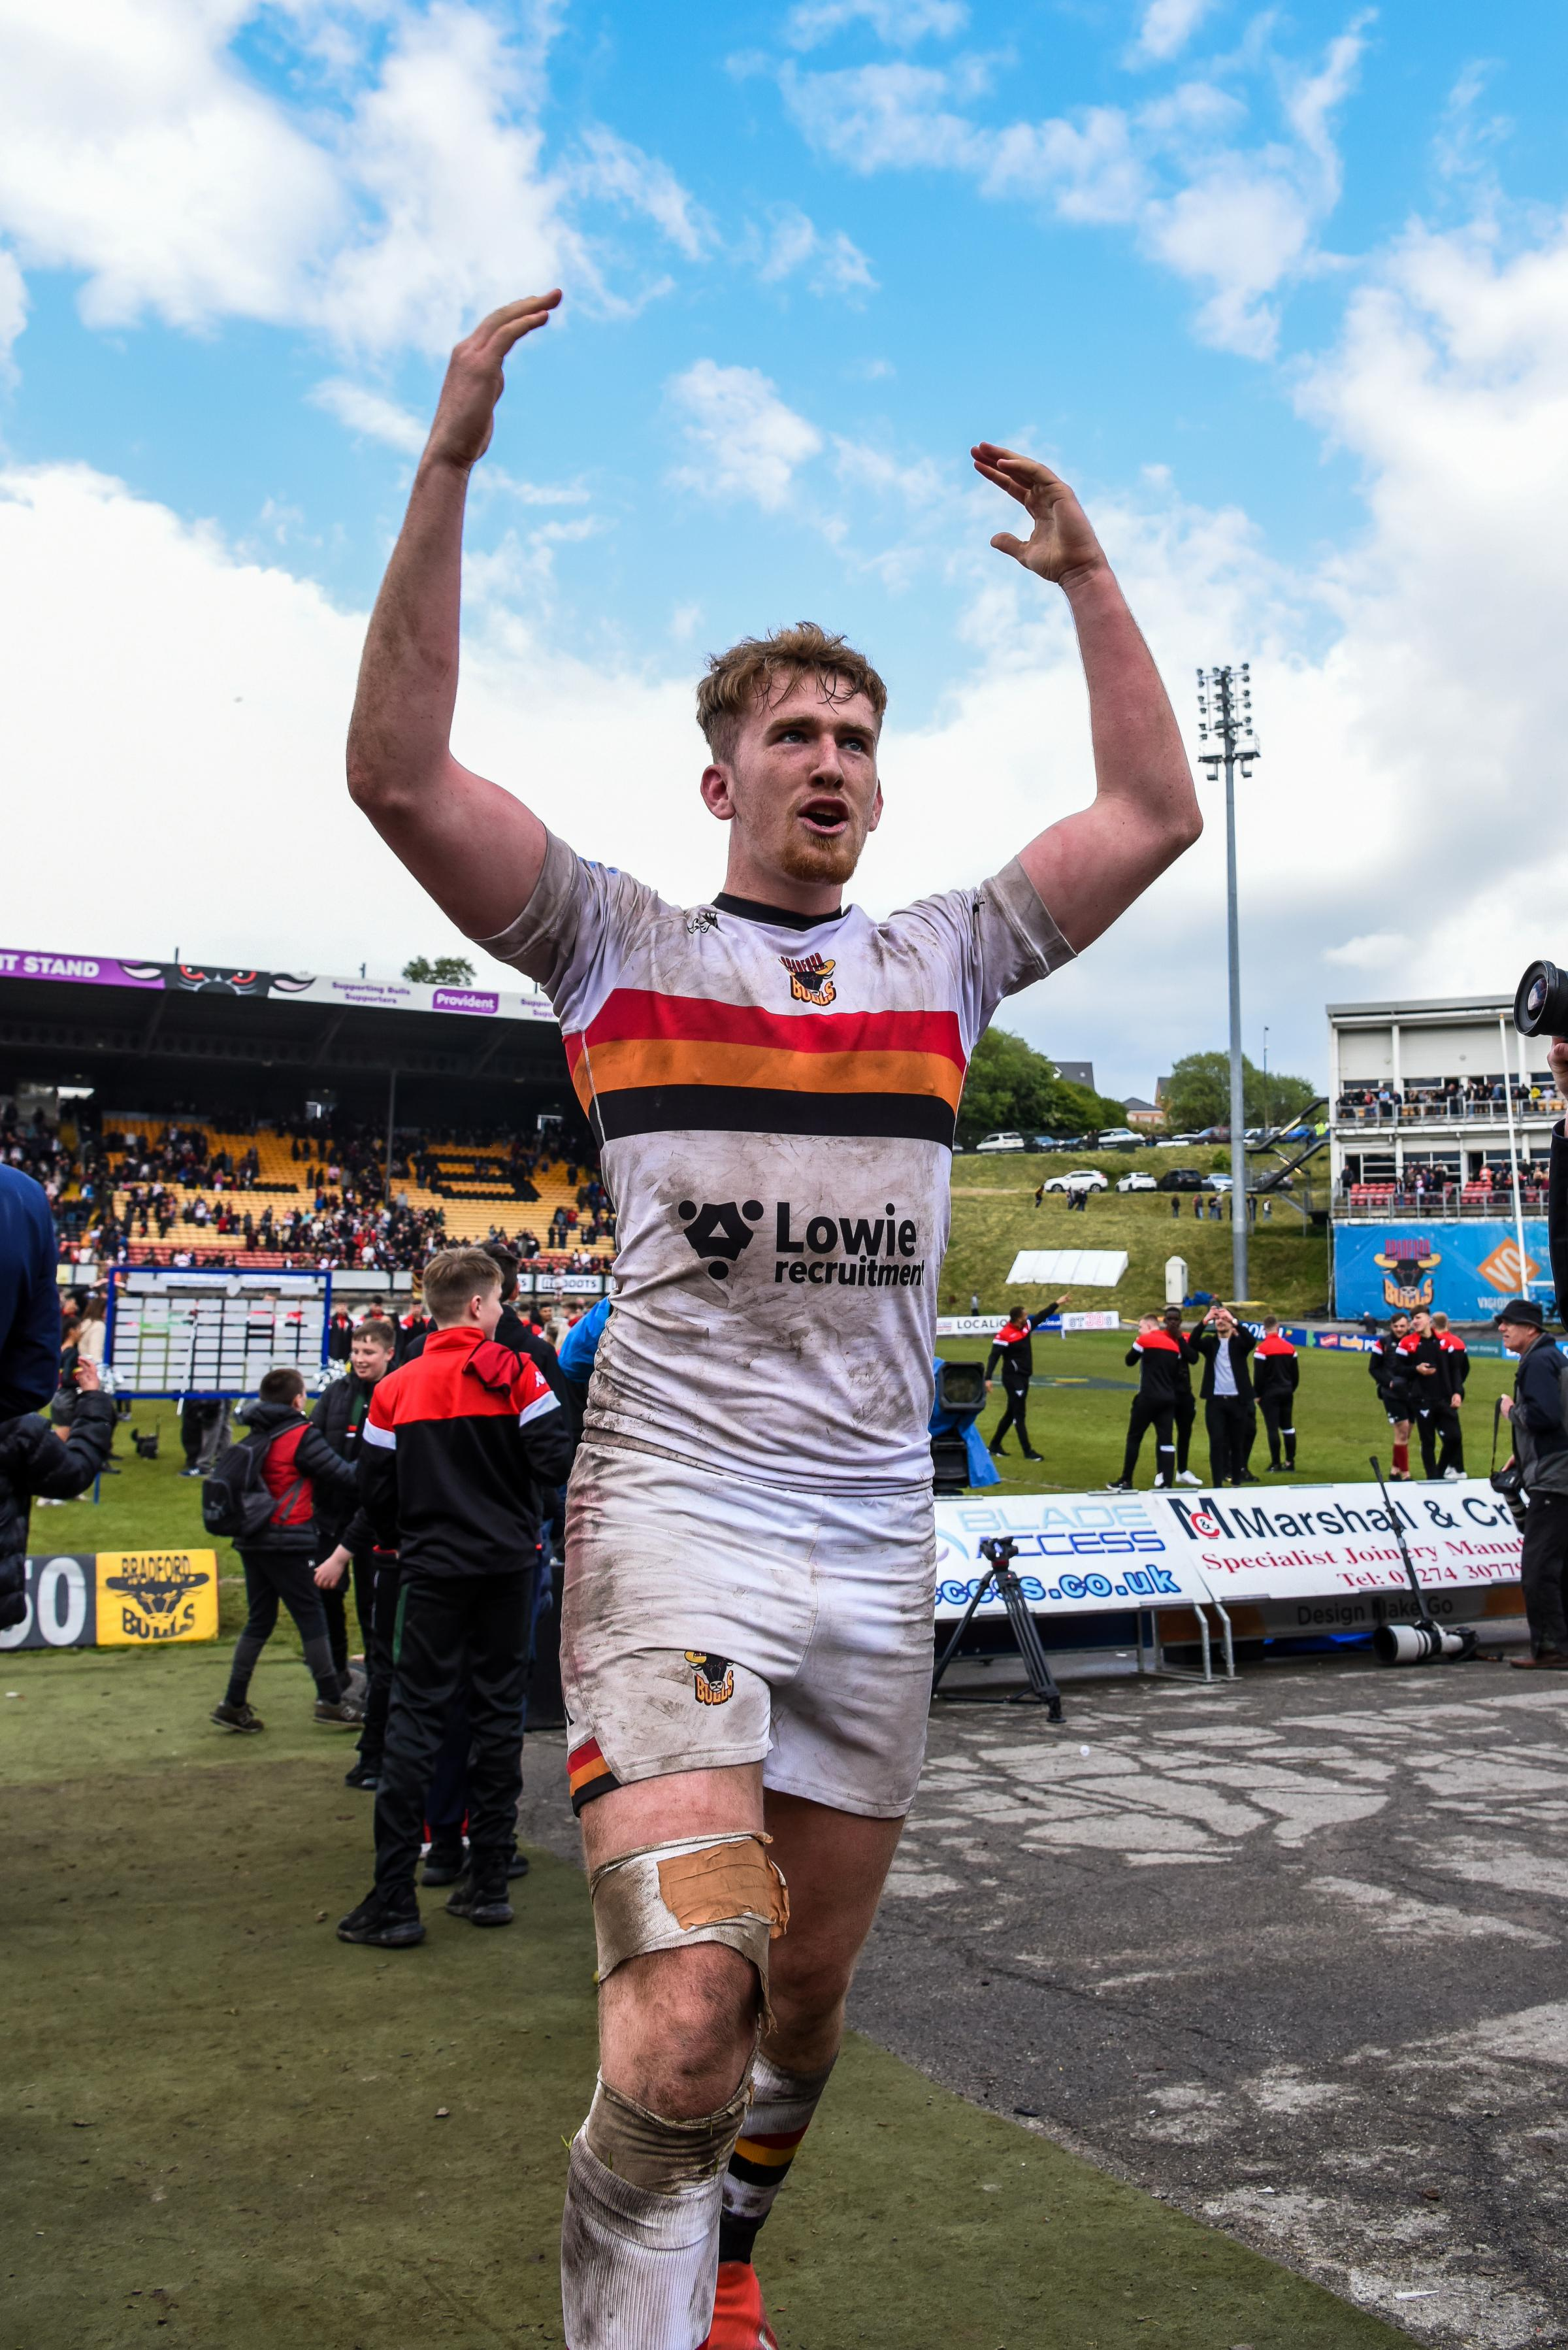 Rowan Milnes was celebrating after his kicking guided Bulls to a 24-22 victory over Leeds Rhinos at Odsal in the Coral Challenge Cup sixth round   Picture: Tom Pearson